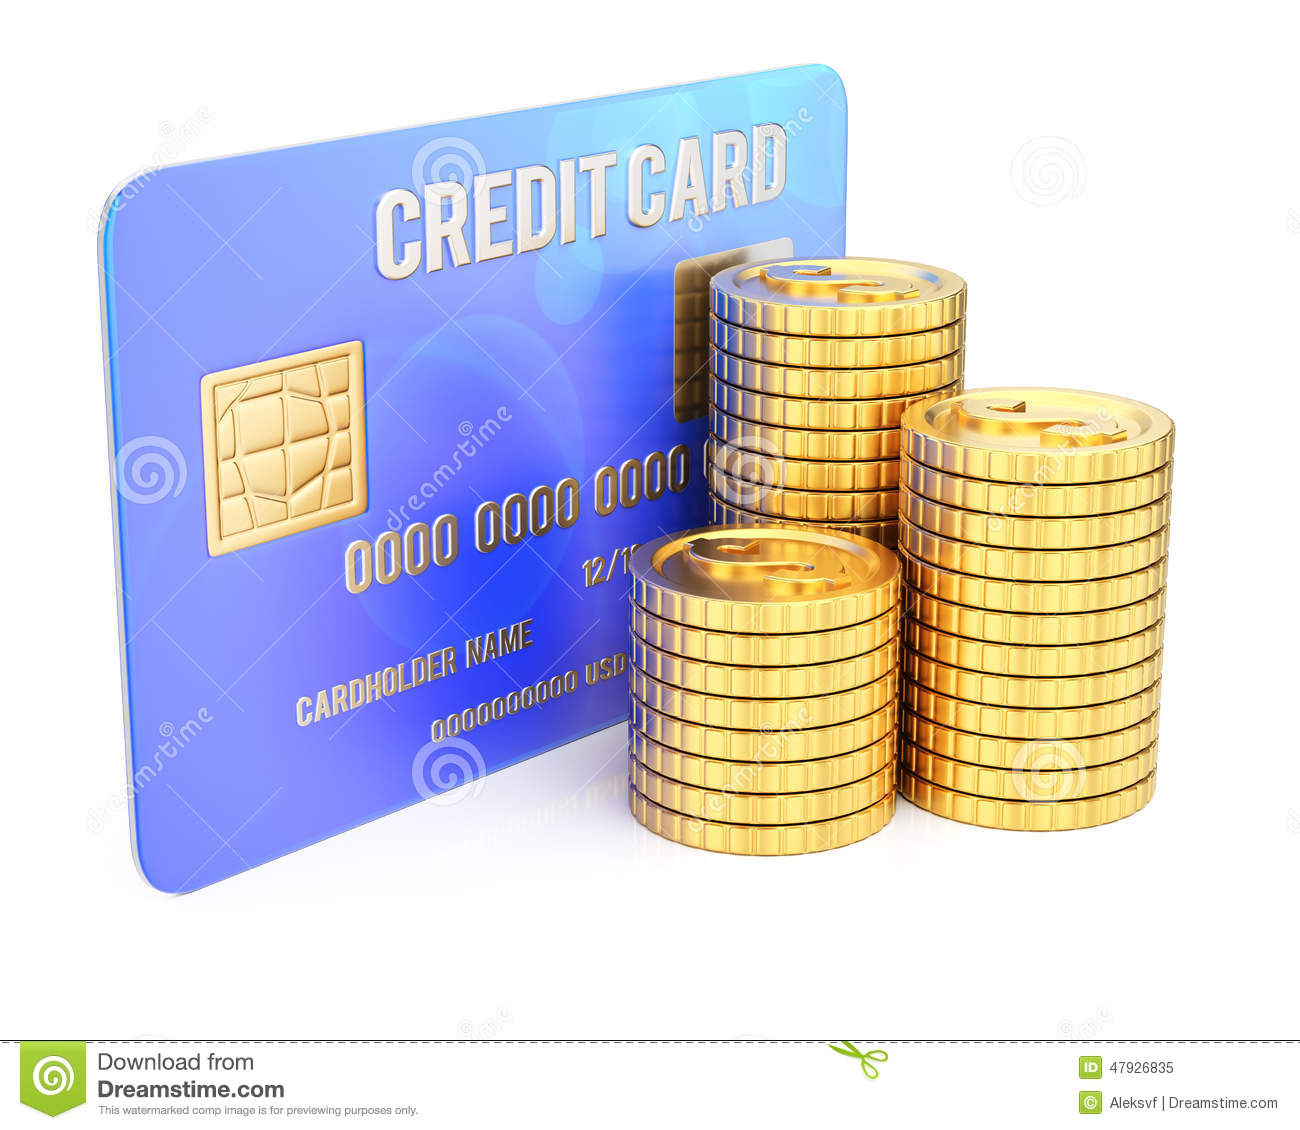 Credit Coin: Credit Card Coins On White, 3d Render Royalty-Free Stock